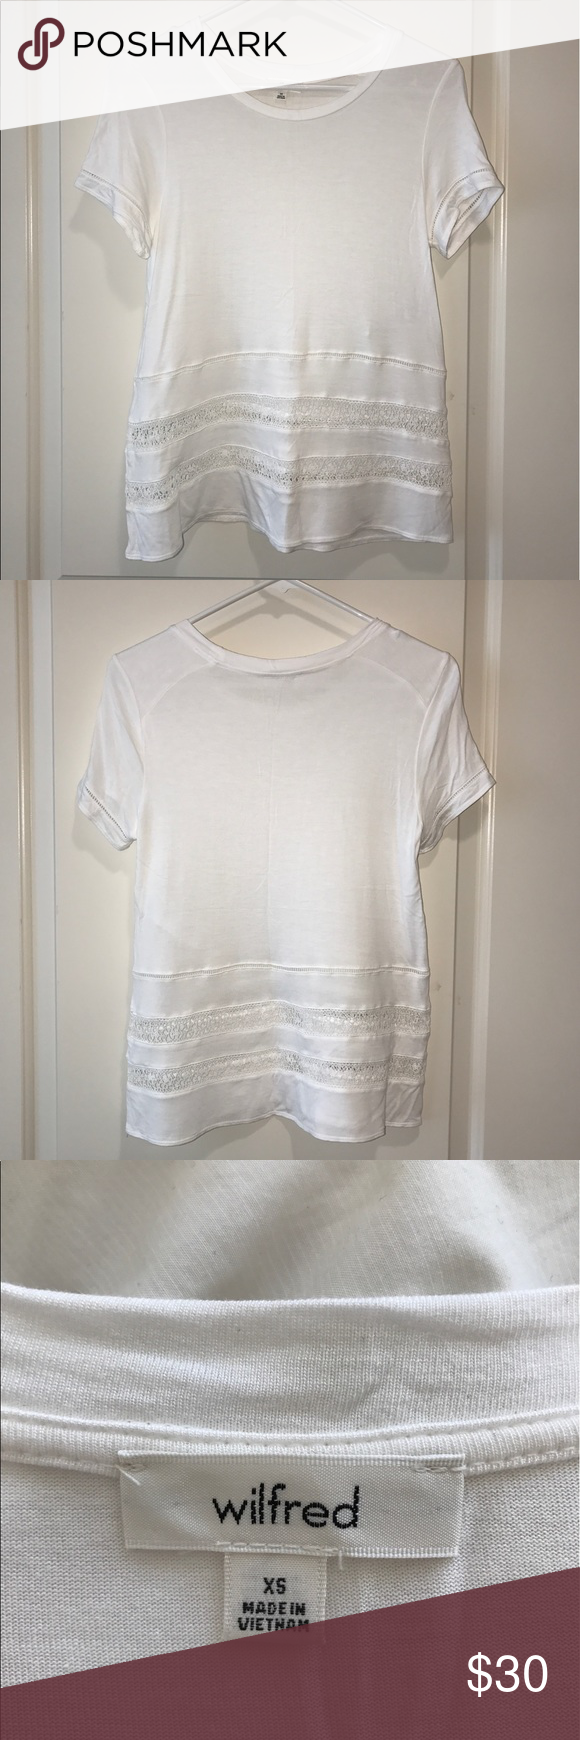 Aritzia Wilfred Rêve T-Shirt Aritzia Wilfred Rêve T-Shirt in White. Size XS (fits like a Small). Soft-to-the-touch jersey. Relaxed fit. Classic crewneck. Lace inserts along lower body and sleeves. Worn once. Aritzia Tops Tees - Short Sleeve